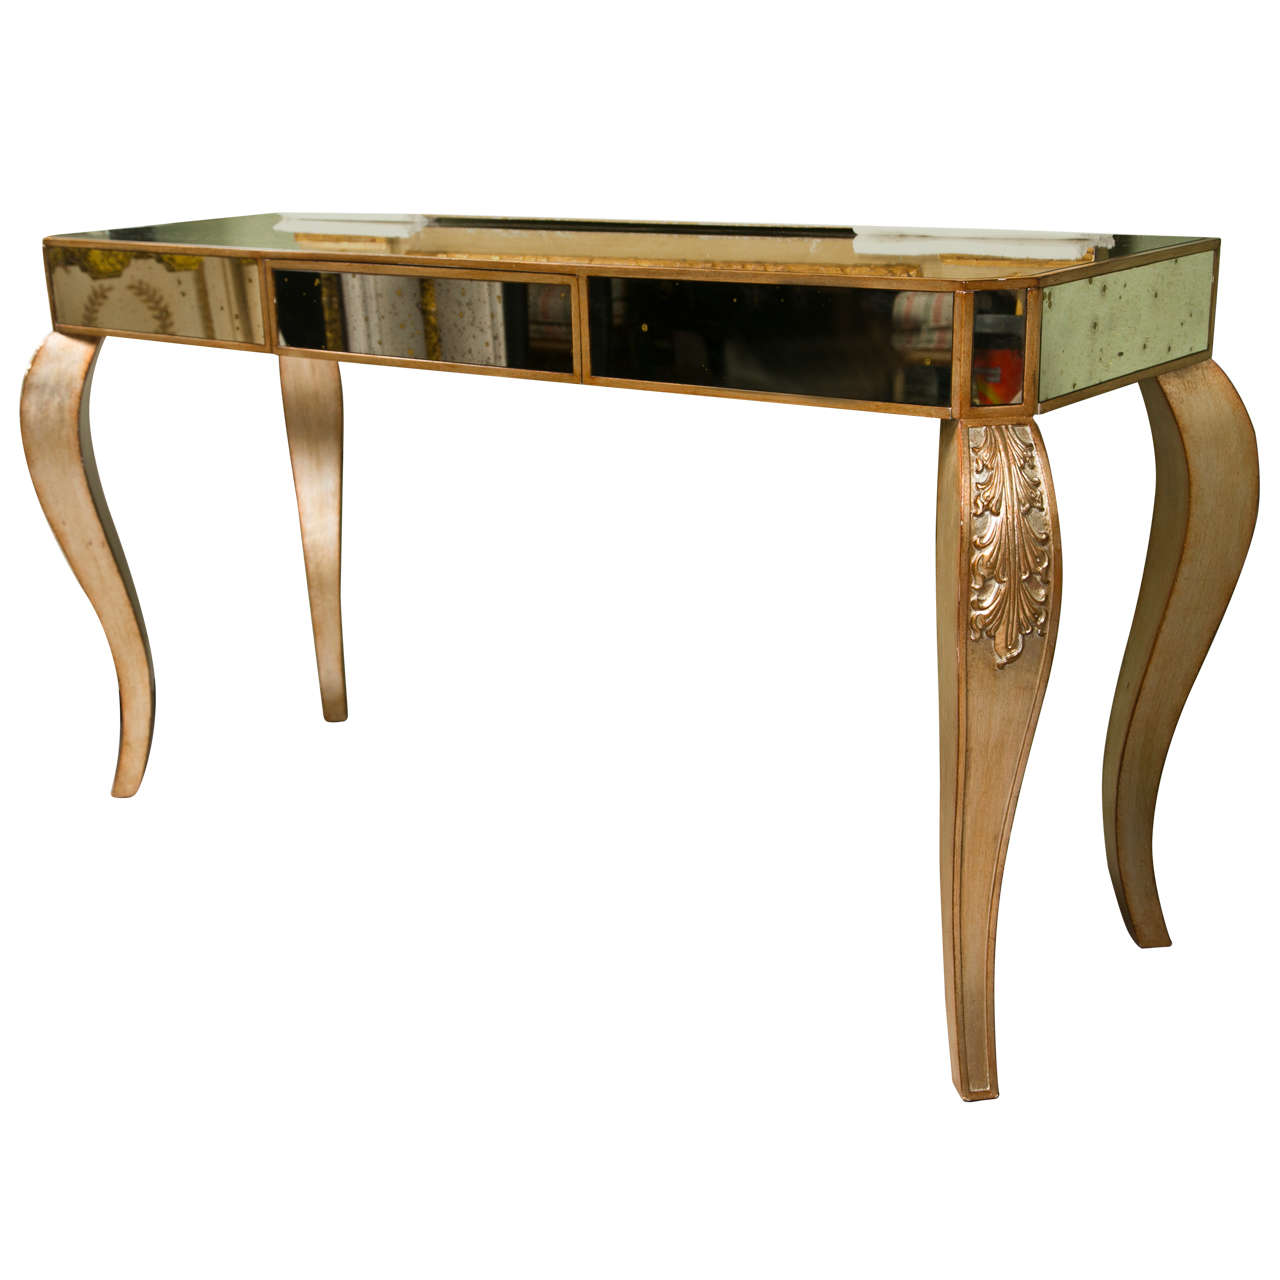 Decorative mirrored console table for sale at 1stdibs - Ornate hall table ...